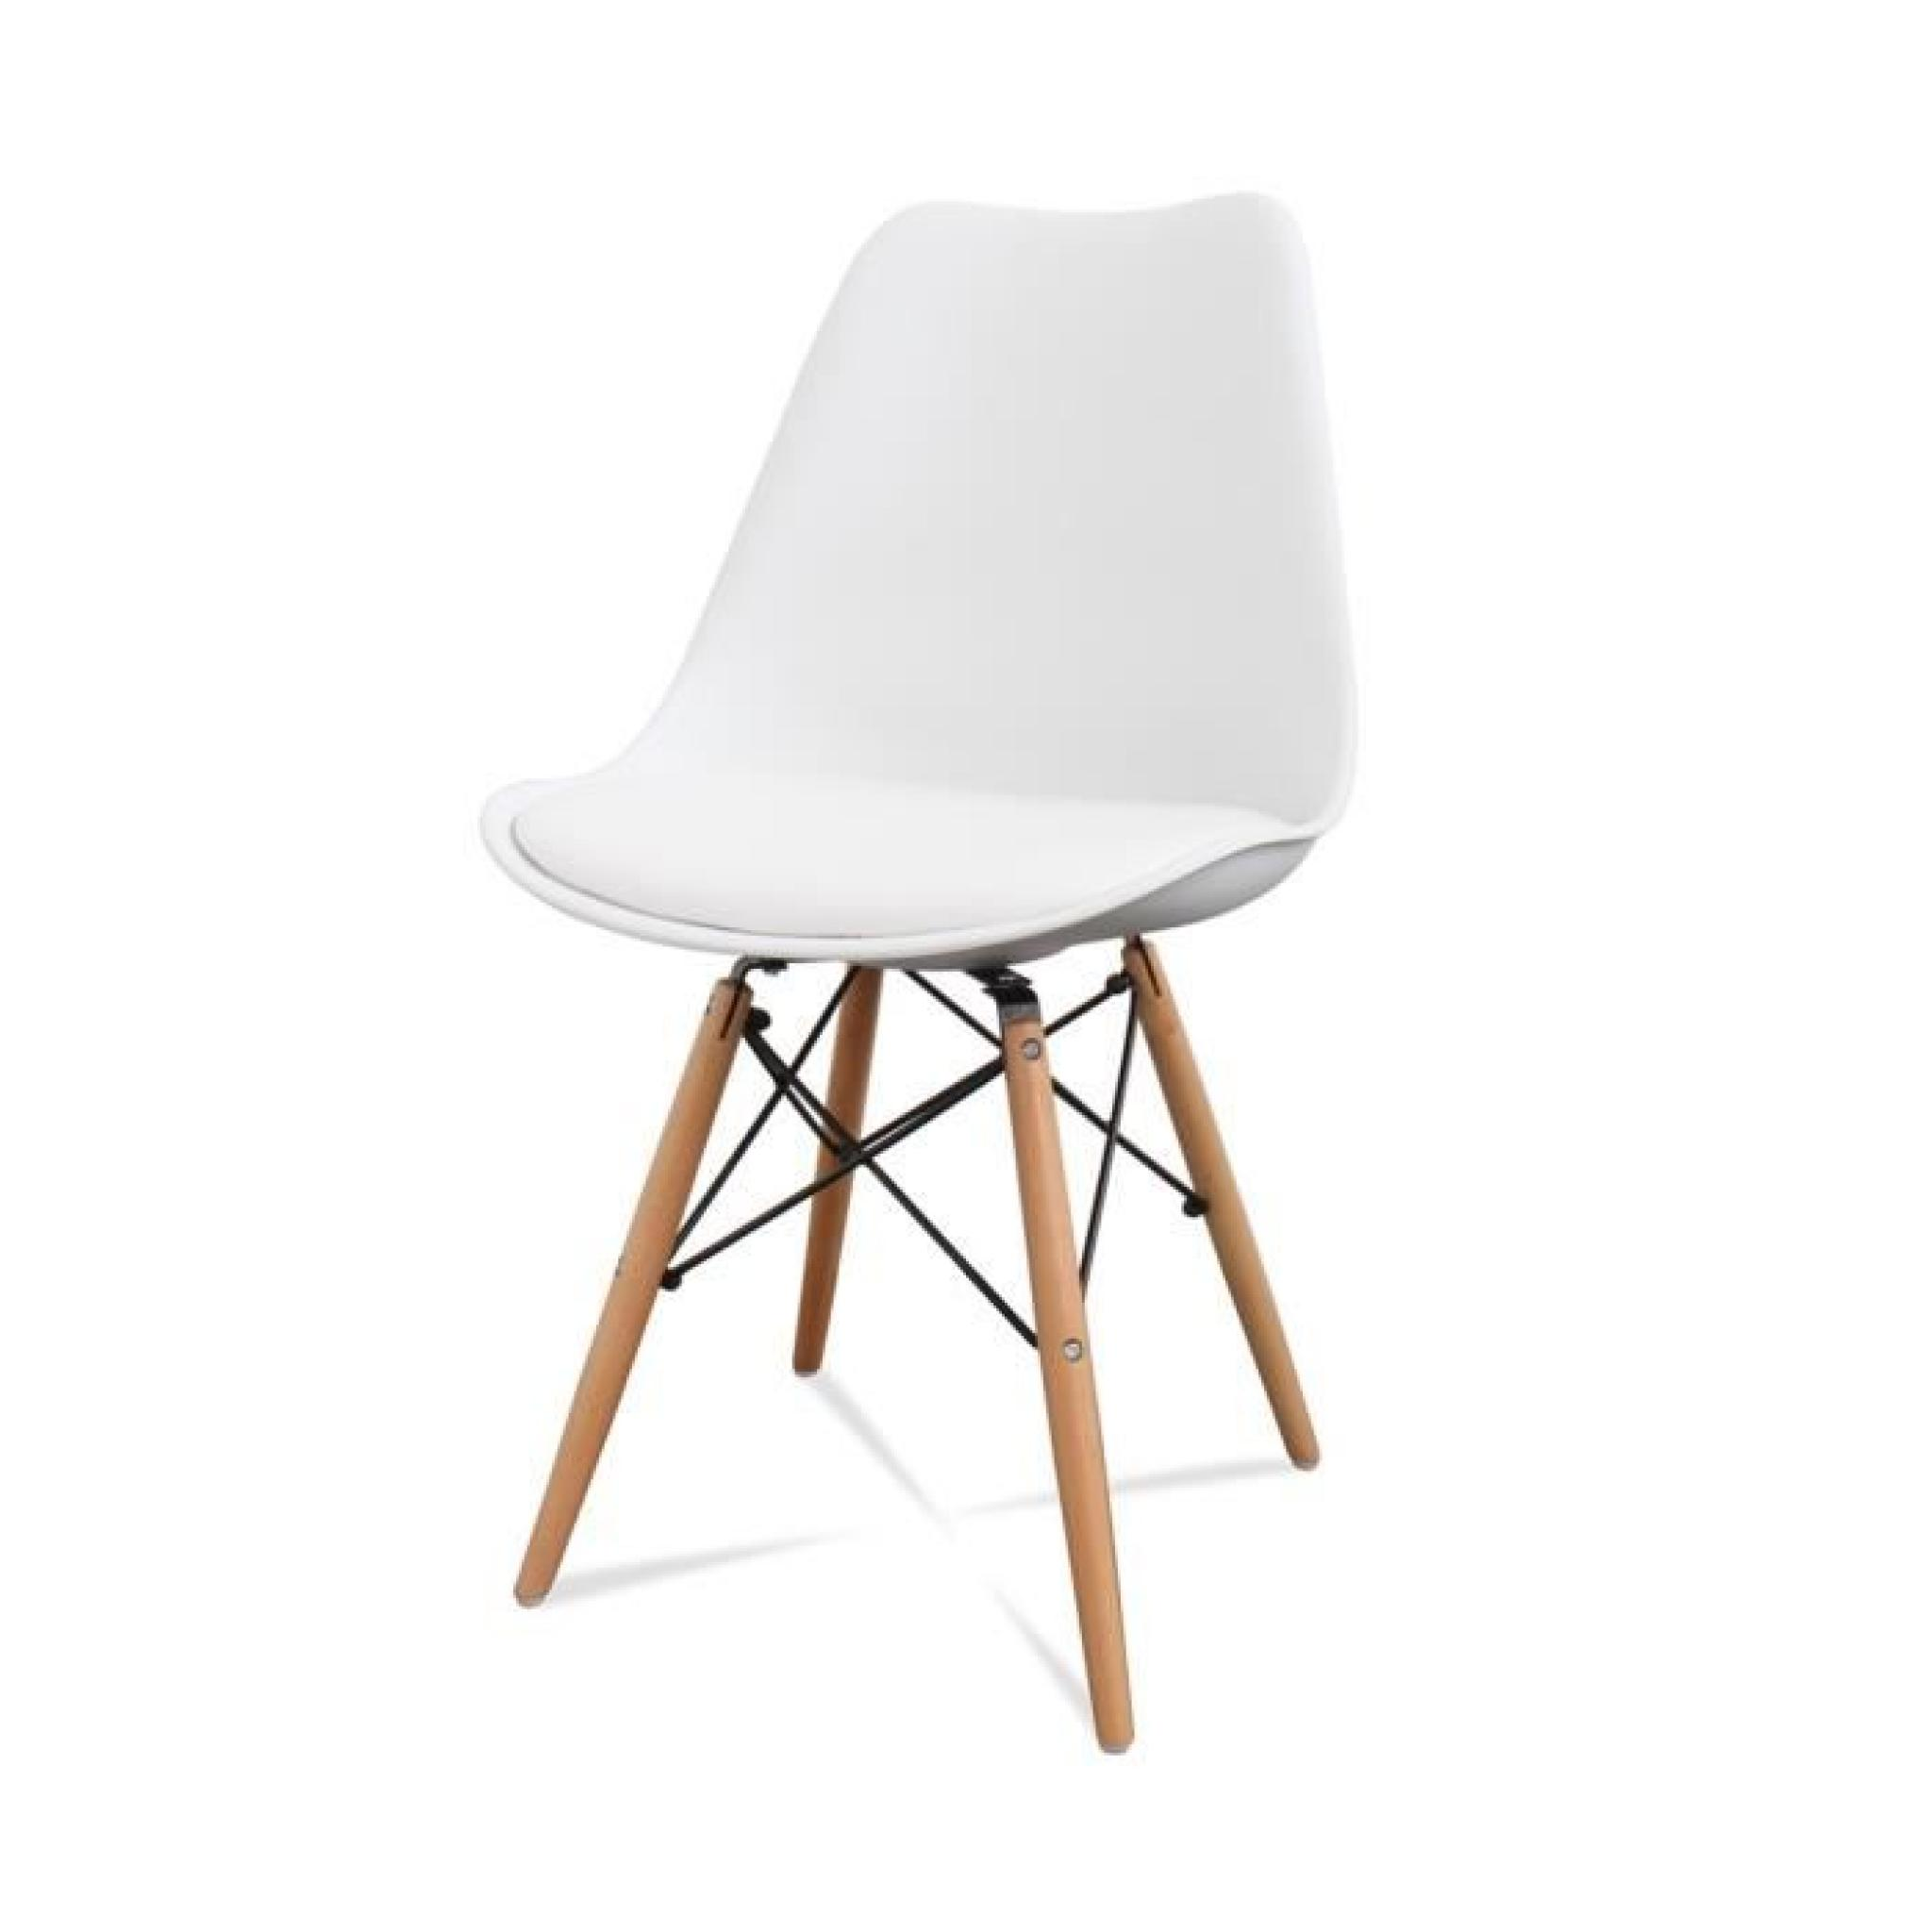 Lot de chaise design pas cher maison design for Chaise design dsw blanche